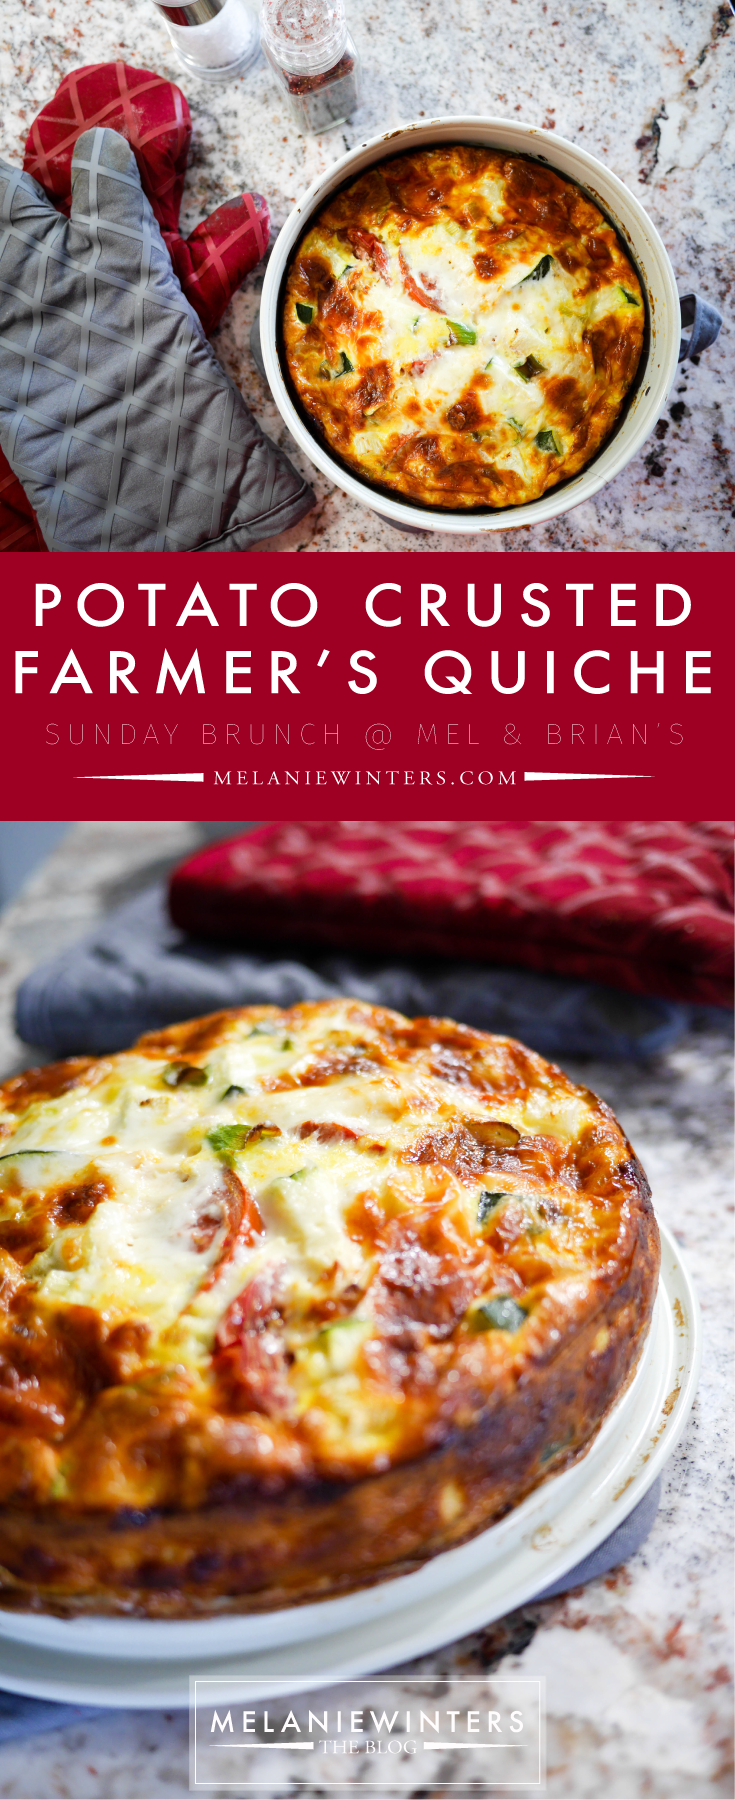 Gluten free and packed with fresh veggies, you can feel good about going back for seconds with this potato crusted farmer's quiche.